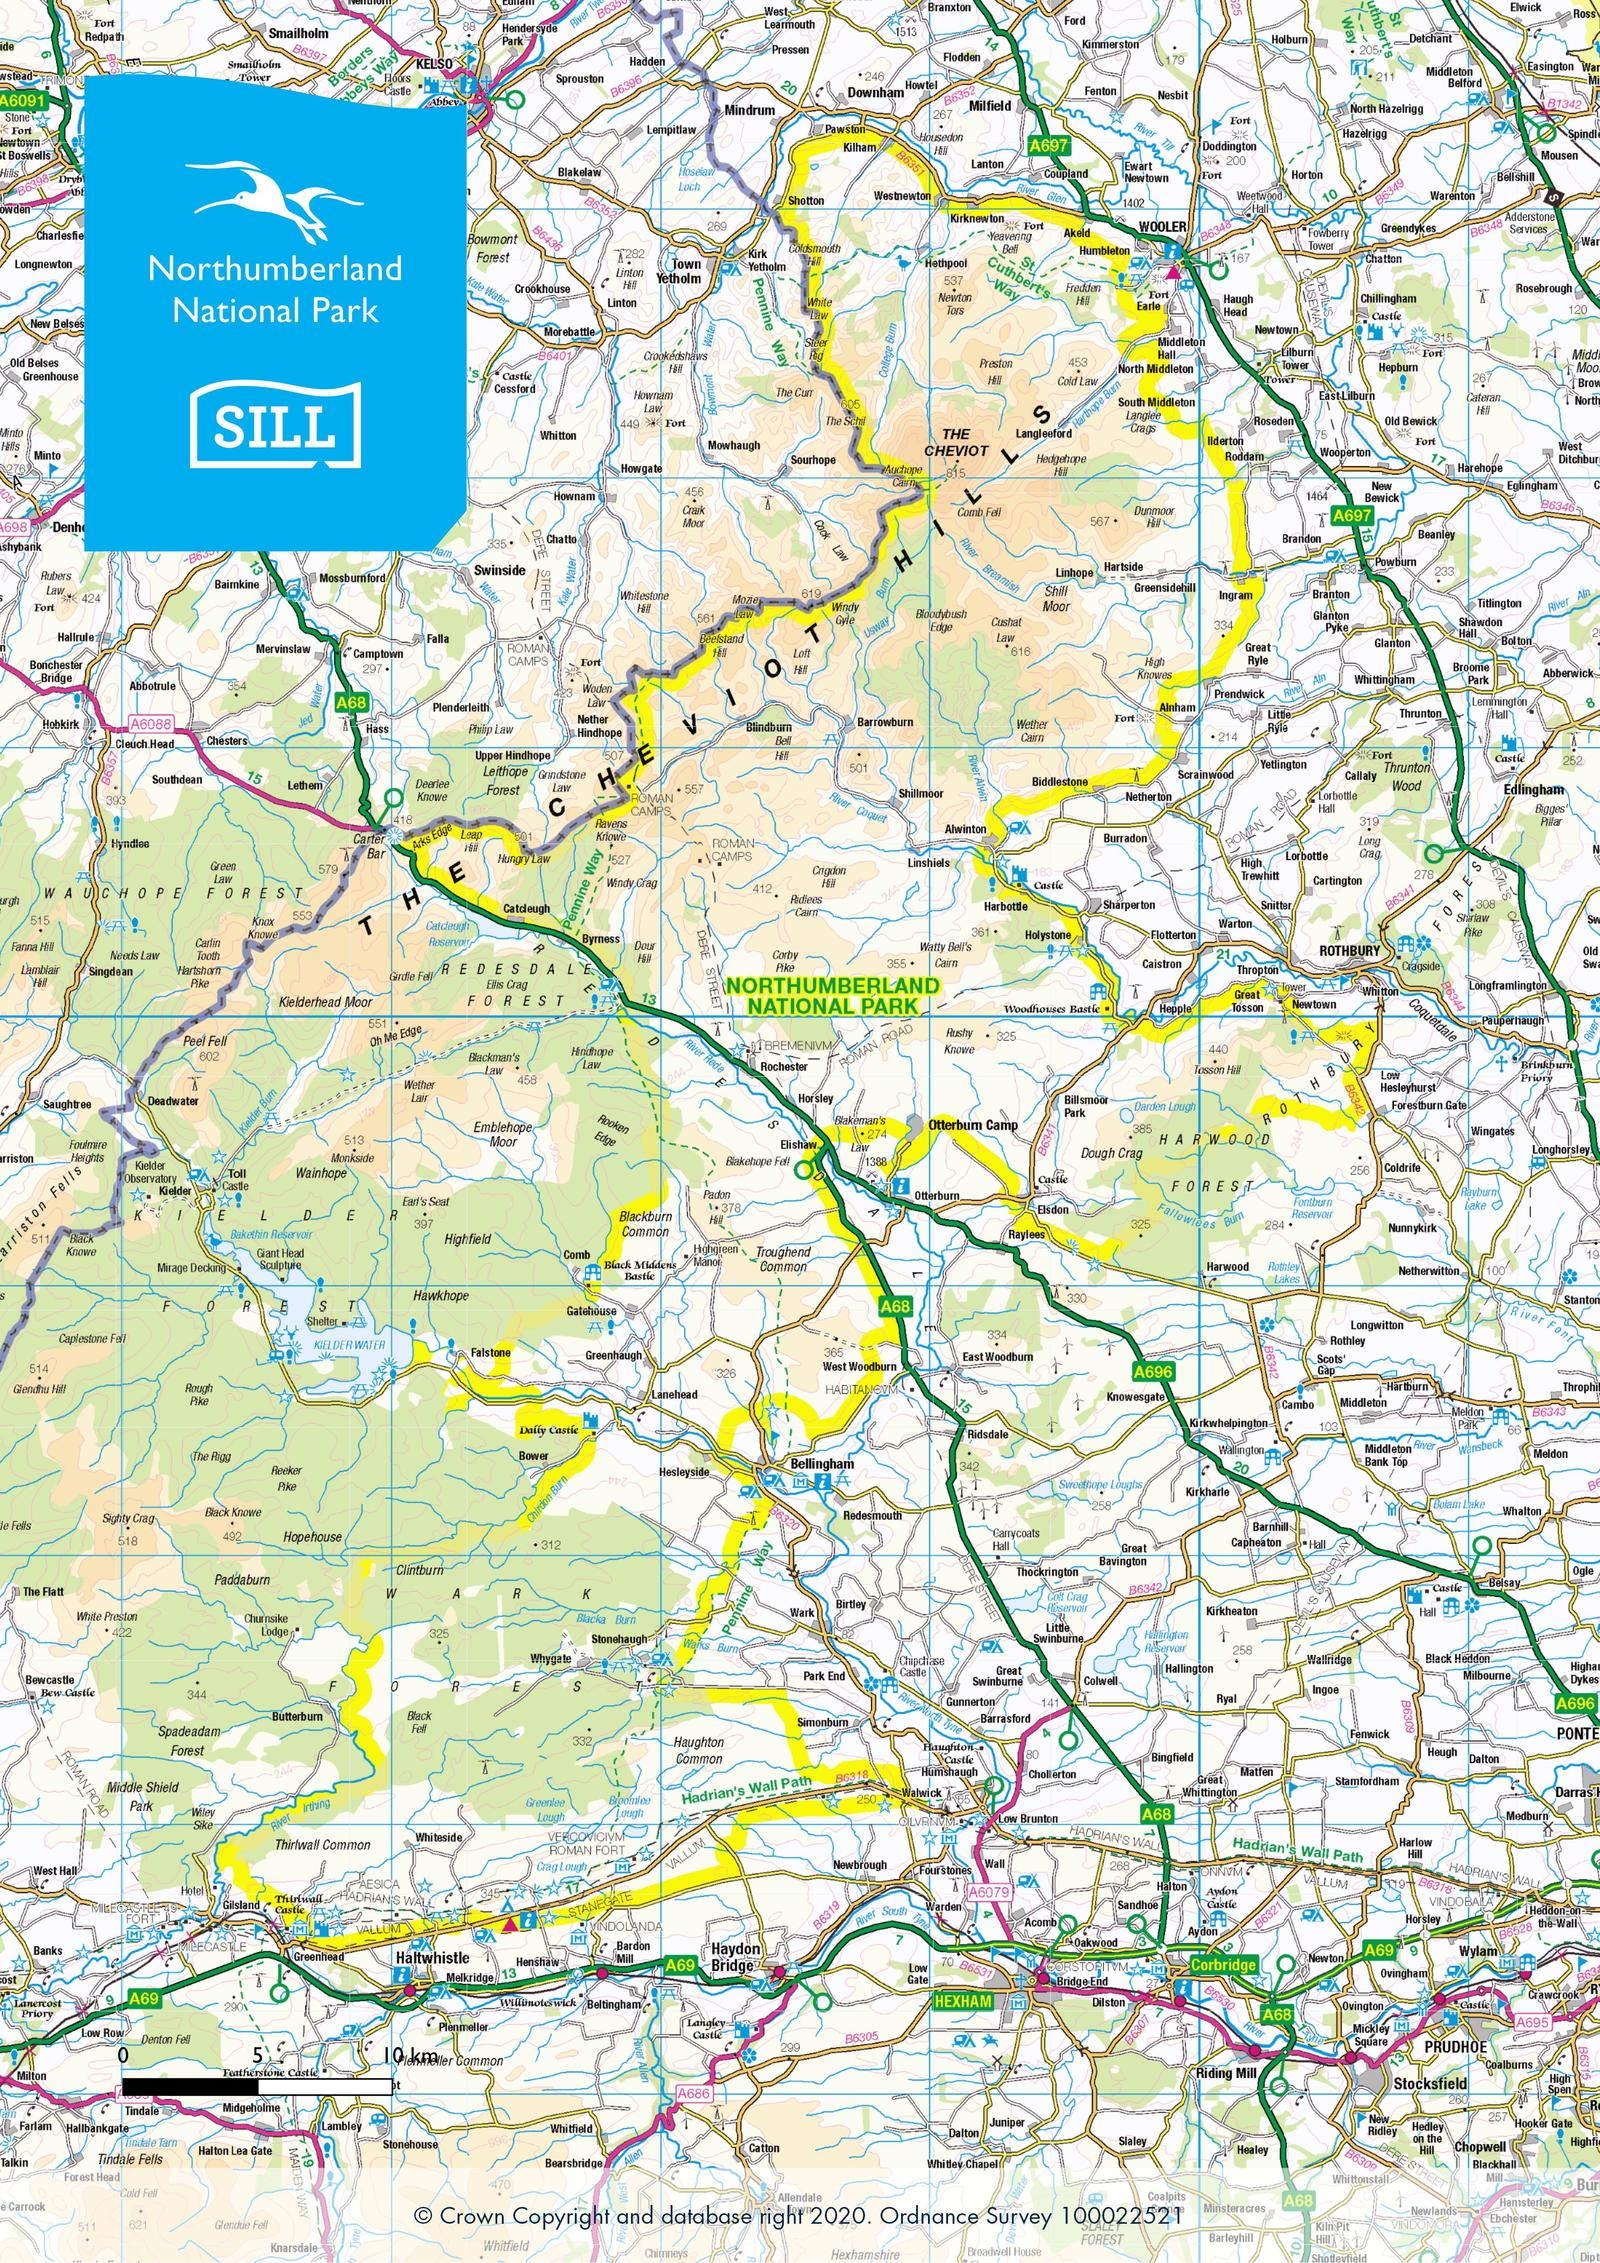 Detailed map showing the boundary of Northumberland National Park